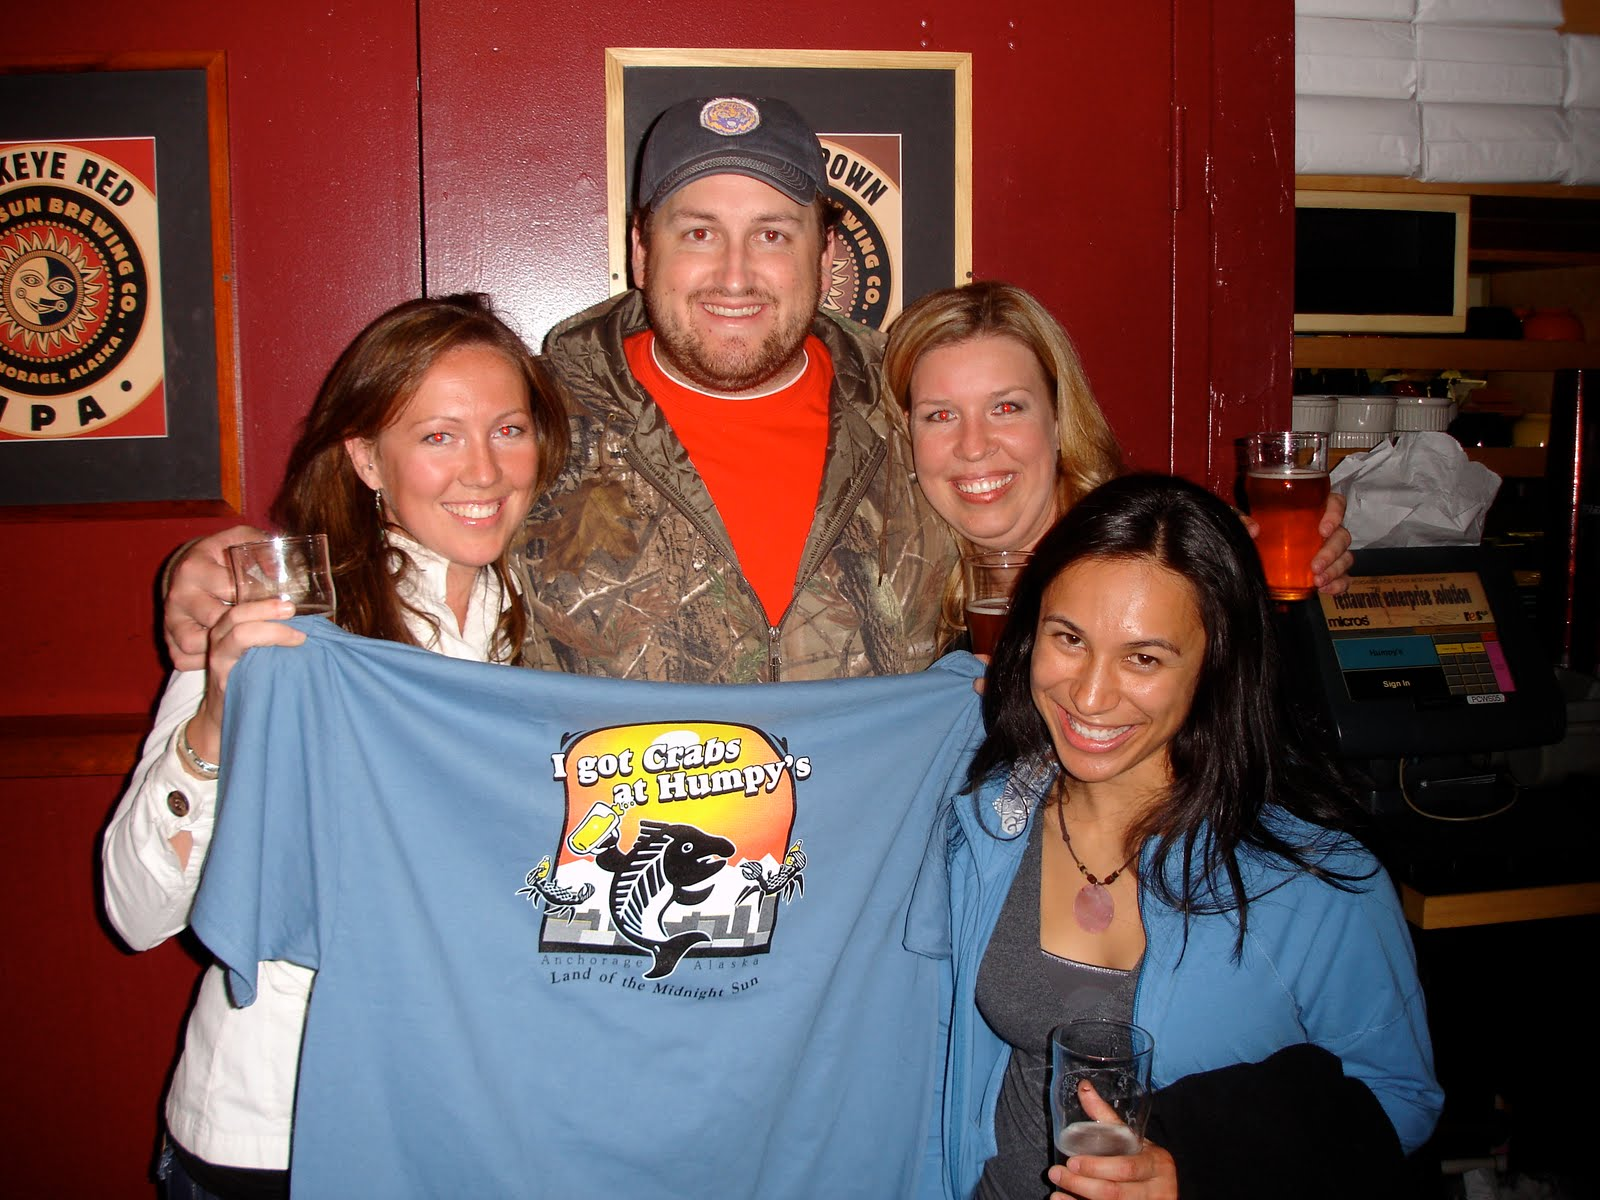 Jay poses with ladies in celebration of completing the kodiak arrest challenge